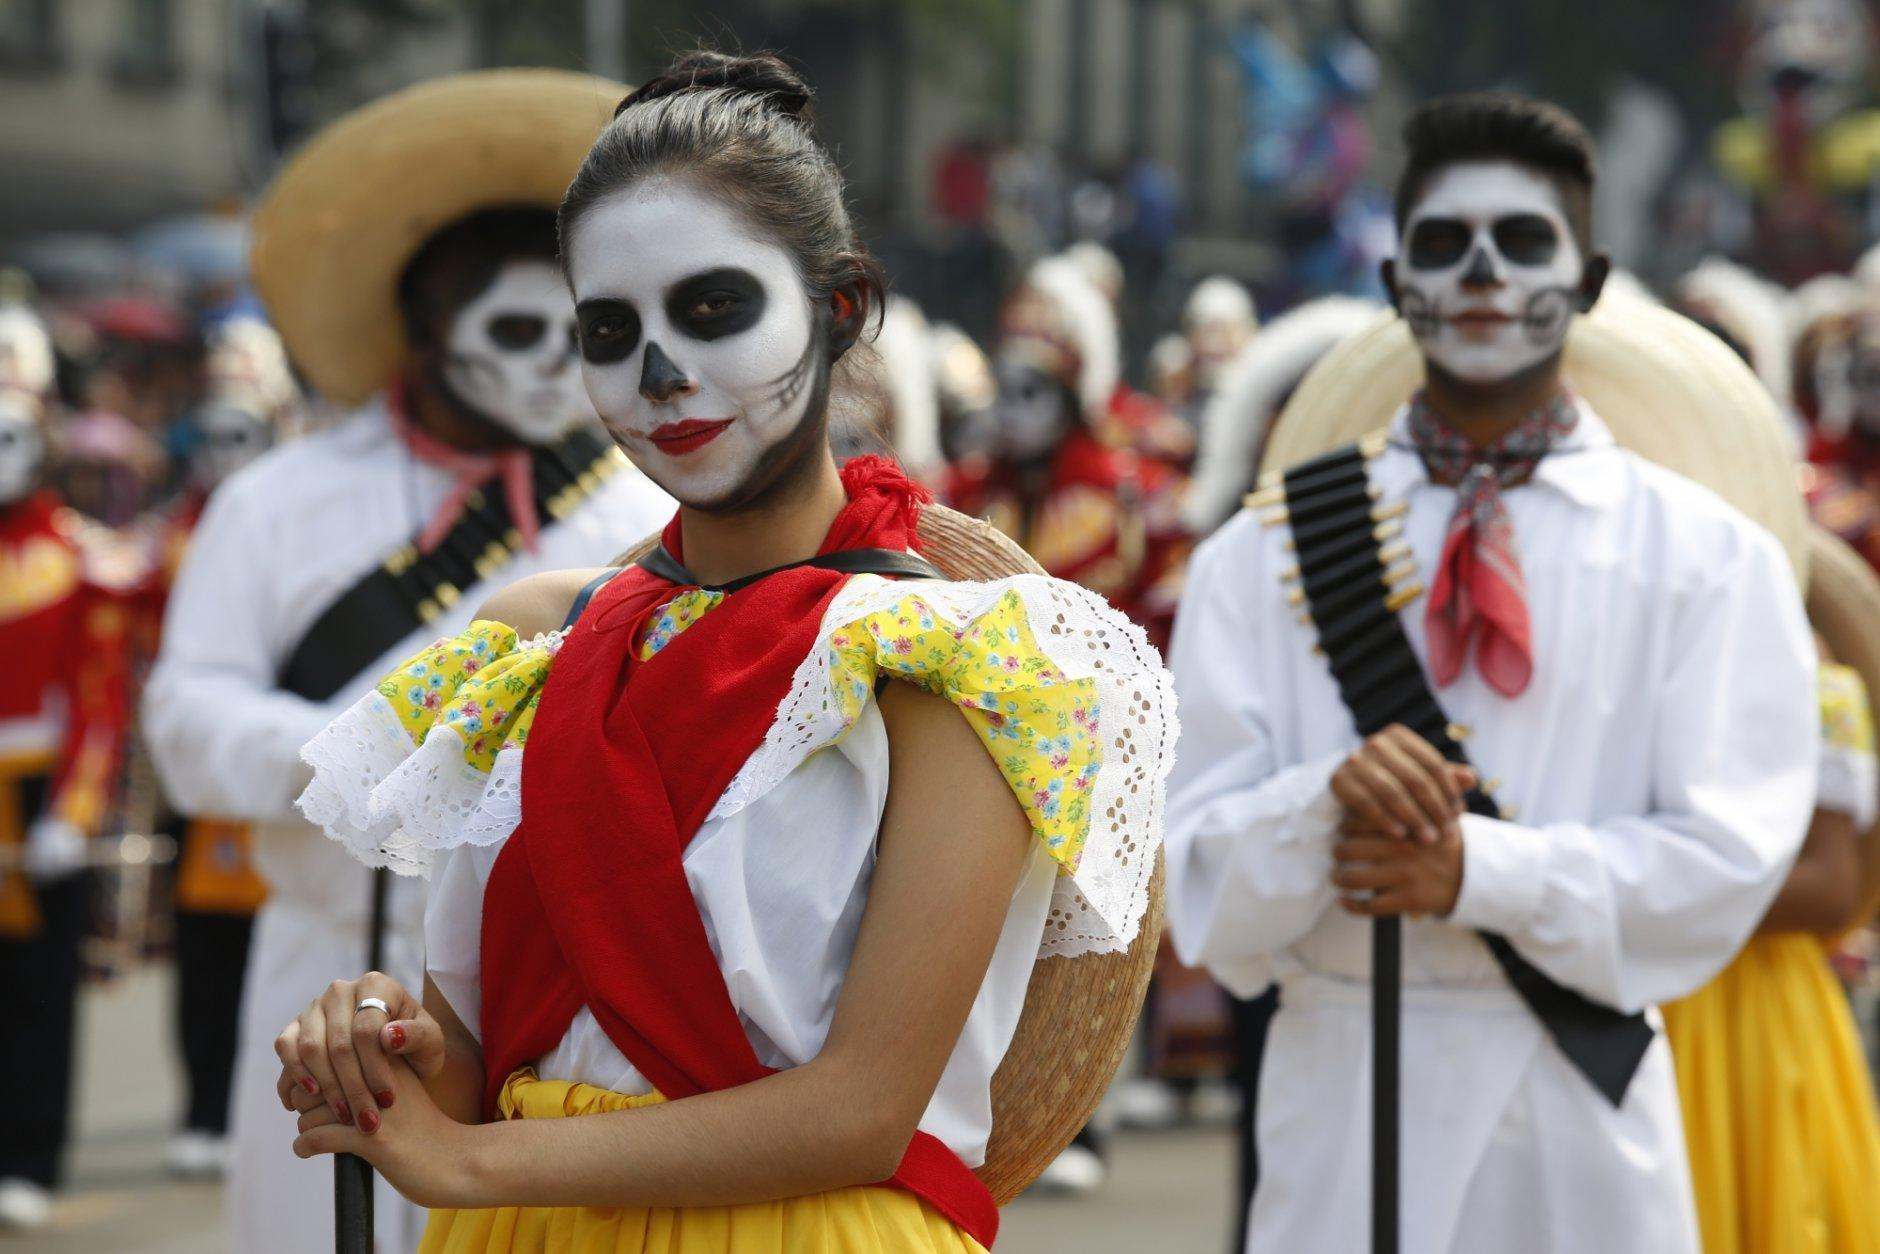 Halloween Costume Bike Race October 27 2020 Day of the Dead parade hits Mexico City as holiday expands | WTOP